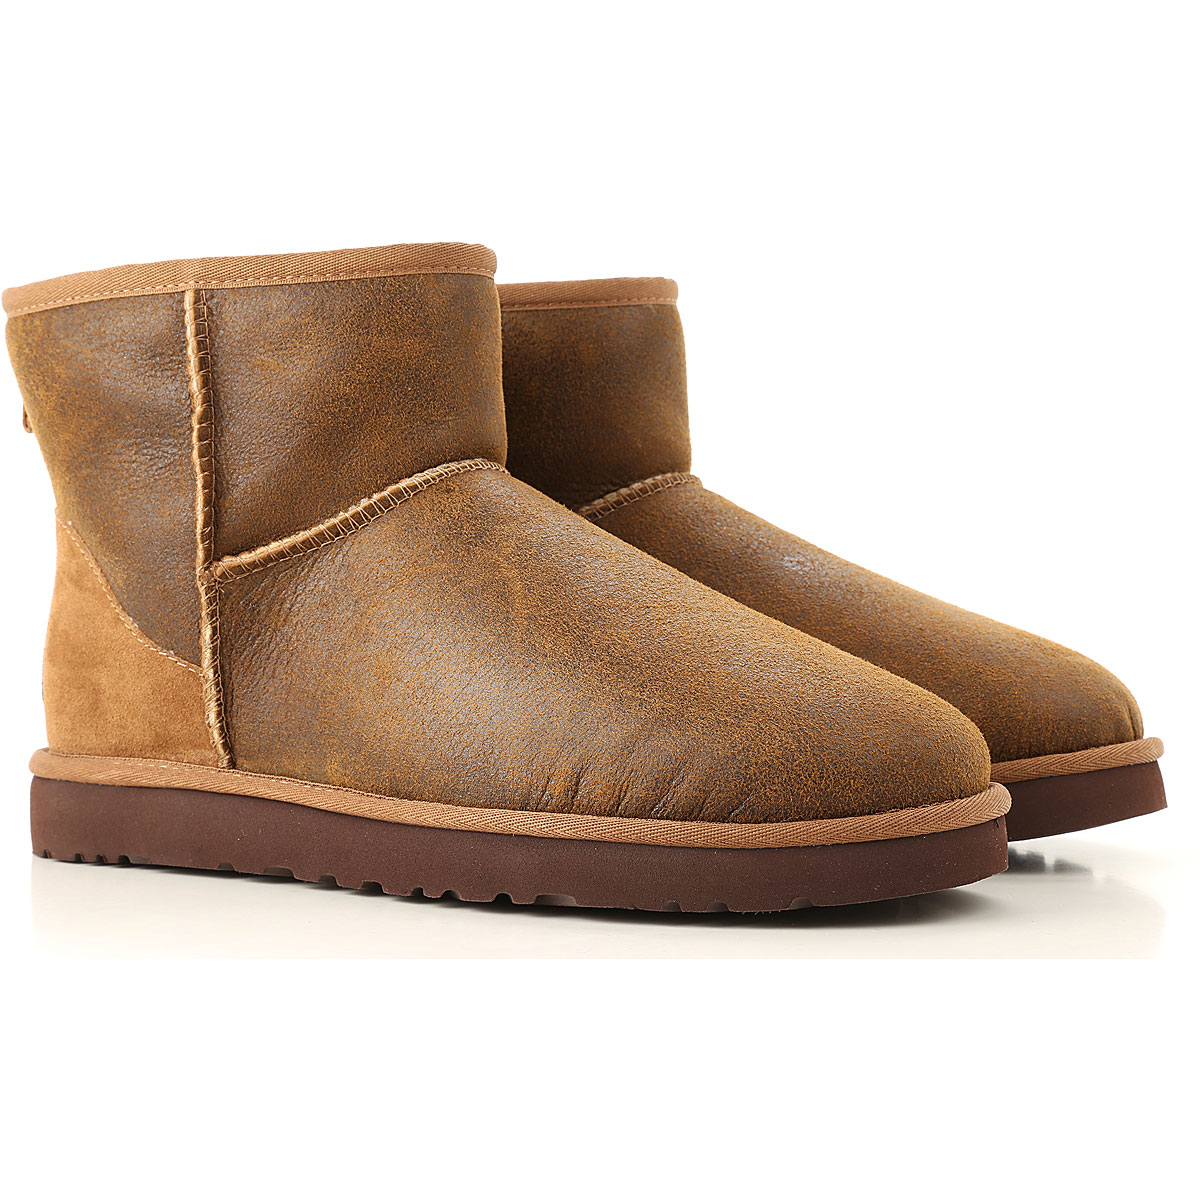 Image of UGG Boots for Men, Booties, Leather Brown, Leather, 2017, 10 11 12 7 8 9